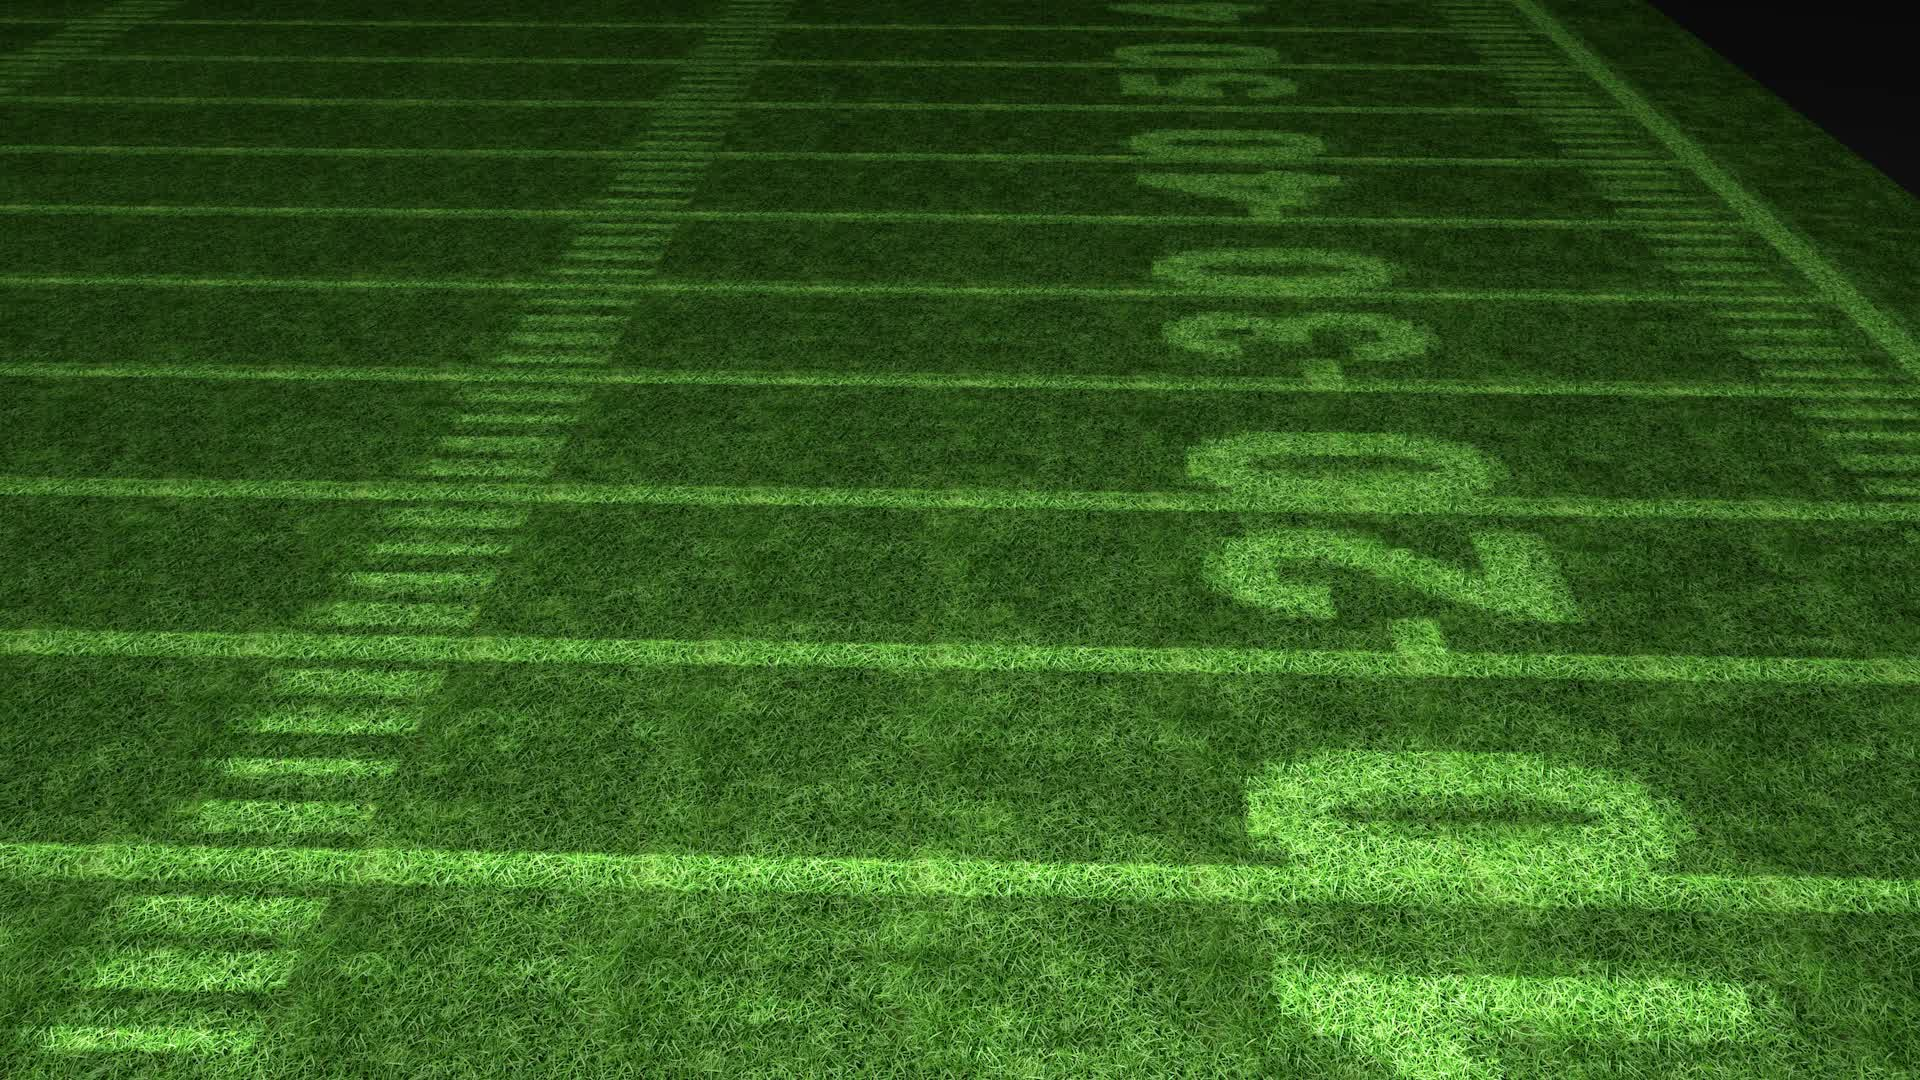 Football Field Backgrounds 1920x1080